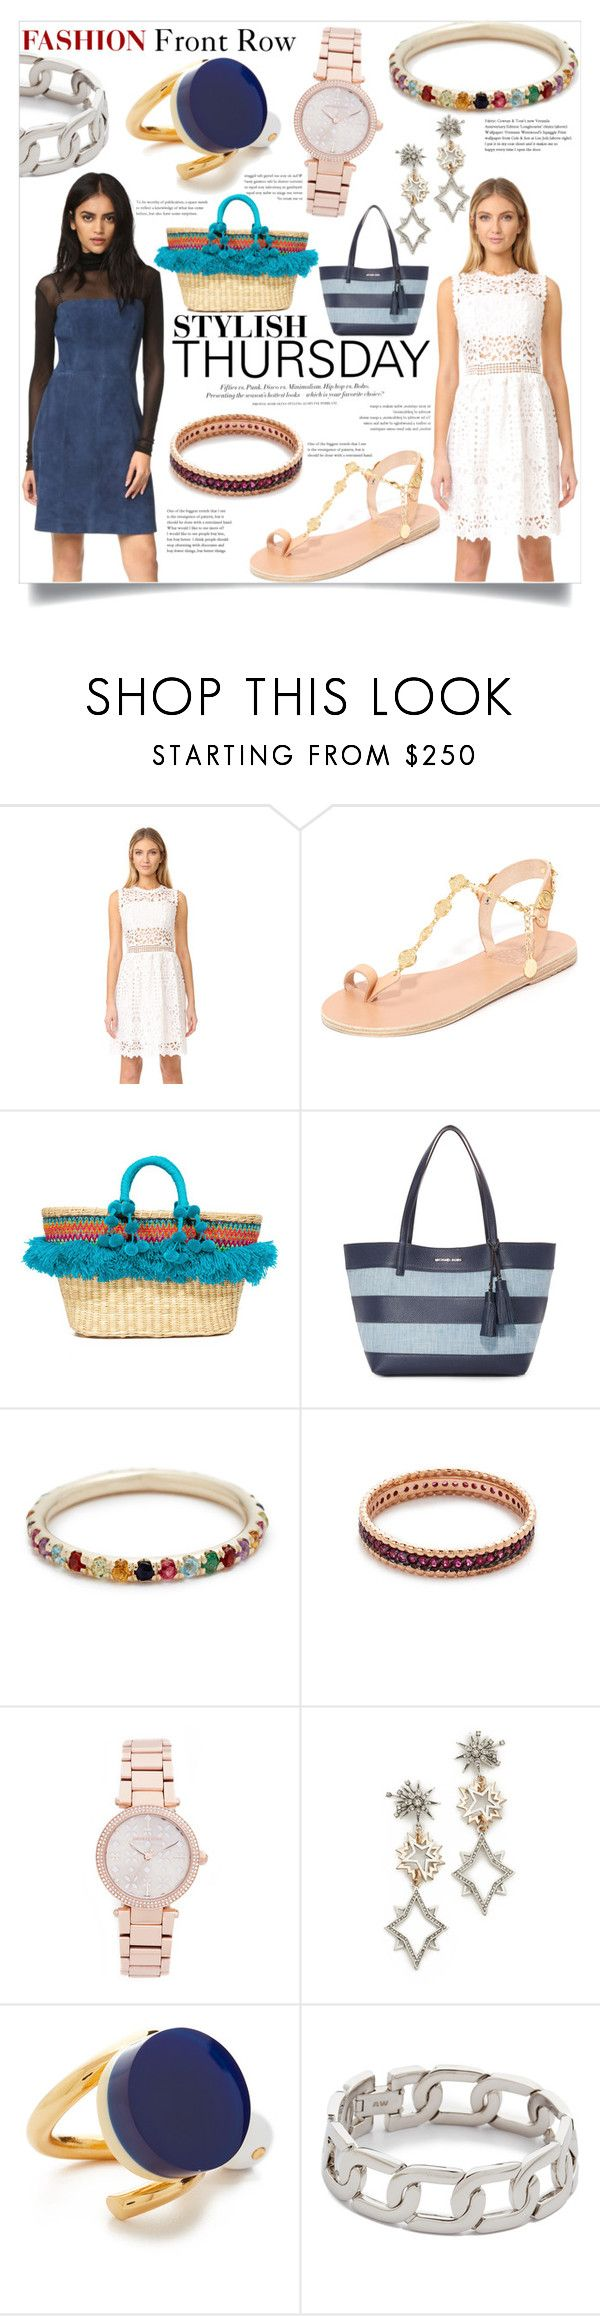 """Spring Fashion - Stylish Thusday"" by bonnielindsay ❤ liked on Polyvore featuring Ministry of Style, Ancient Greek Sandals, H&M, Nannacay, MICHAEL Michael Kors, Ariel Gordon, Kismet by Milka, Michael Kors, Lulu Frost and Marni"